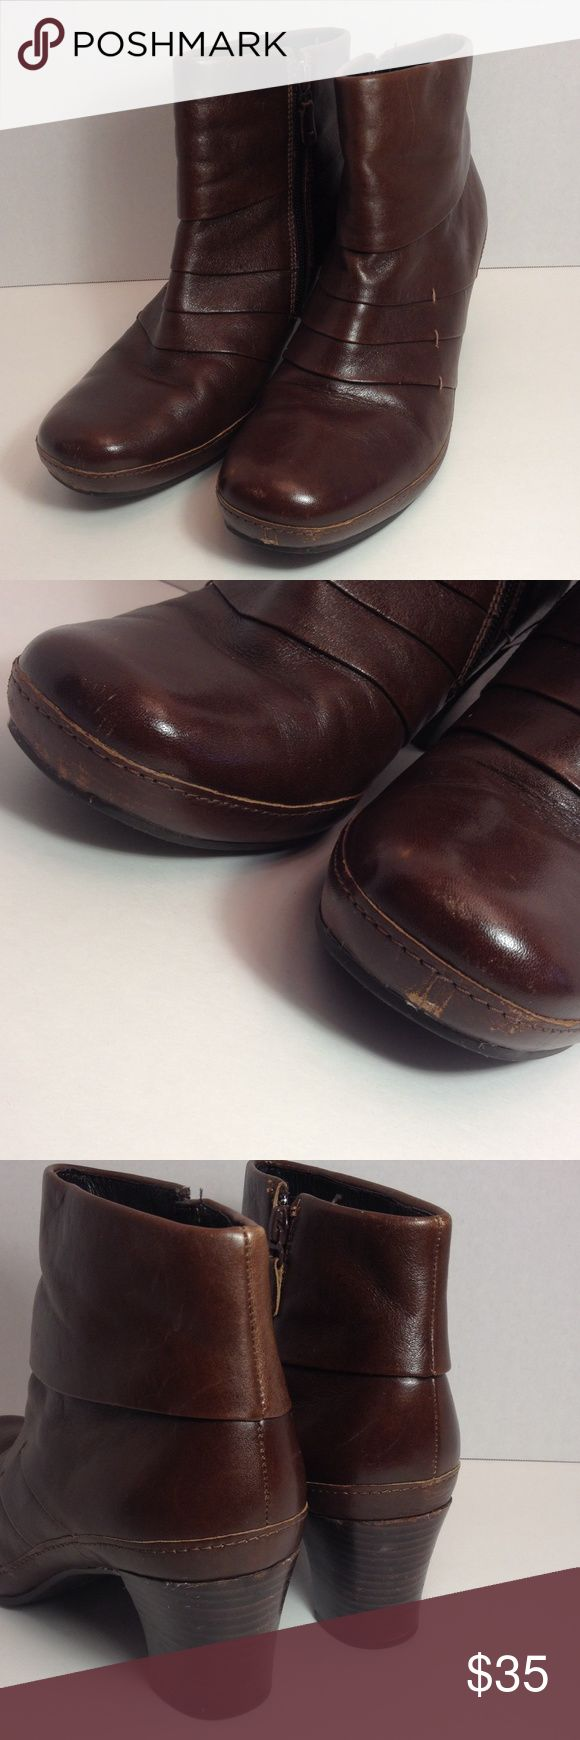 """Clark's brown leather ankle boots Worn a couple times in good condition, zip sides, brown leather with 2.5"""" heels. Please view pictures for light wear under toe area & a light scratch on one of the heels. Flaws not very noticeable when wearing. Clarks Shoes Ankle Boots & Booties"""